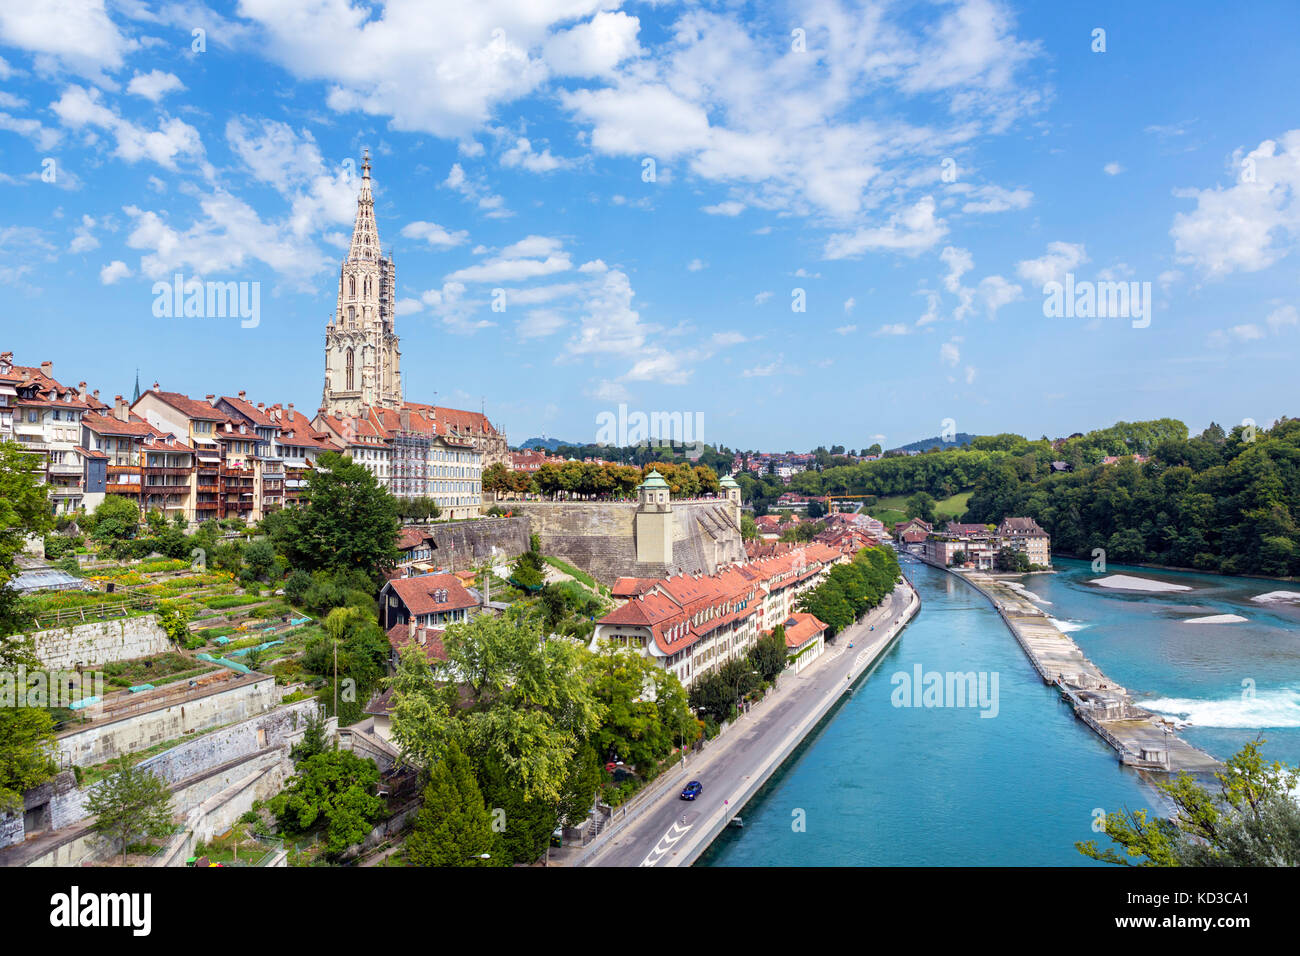 View over the River Aare looking over the city towards the spire of Bern Minster (Berner Münster), Bern (Berne), - Stock Image